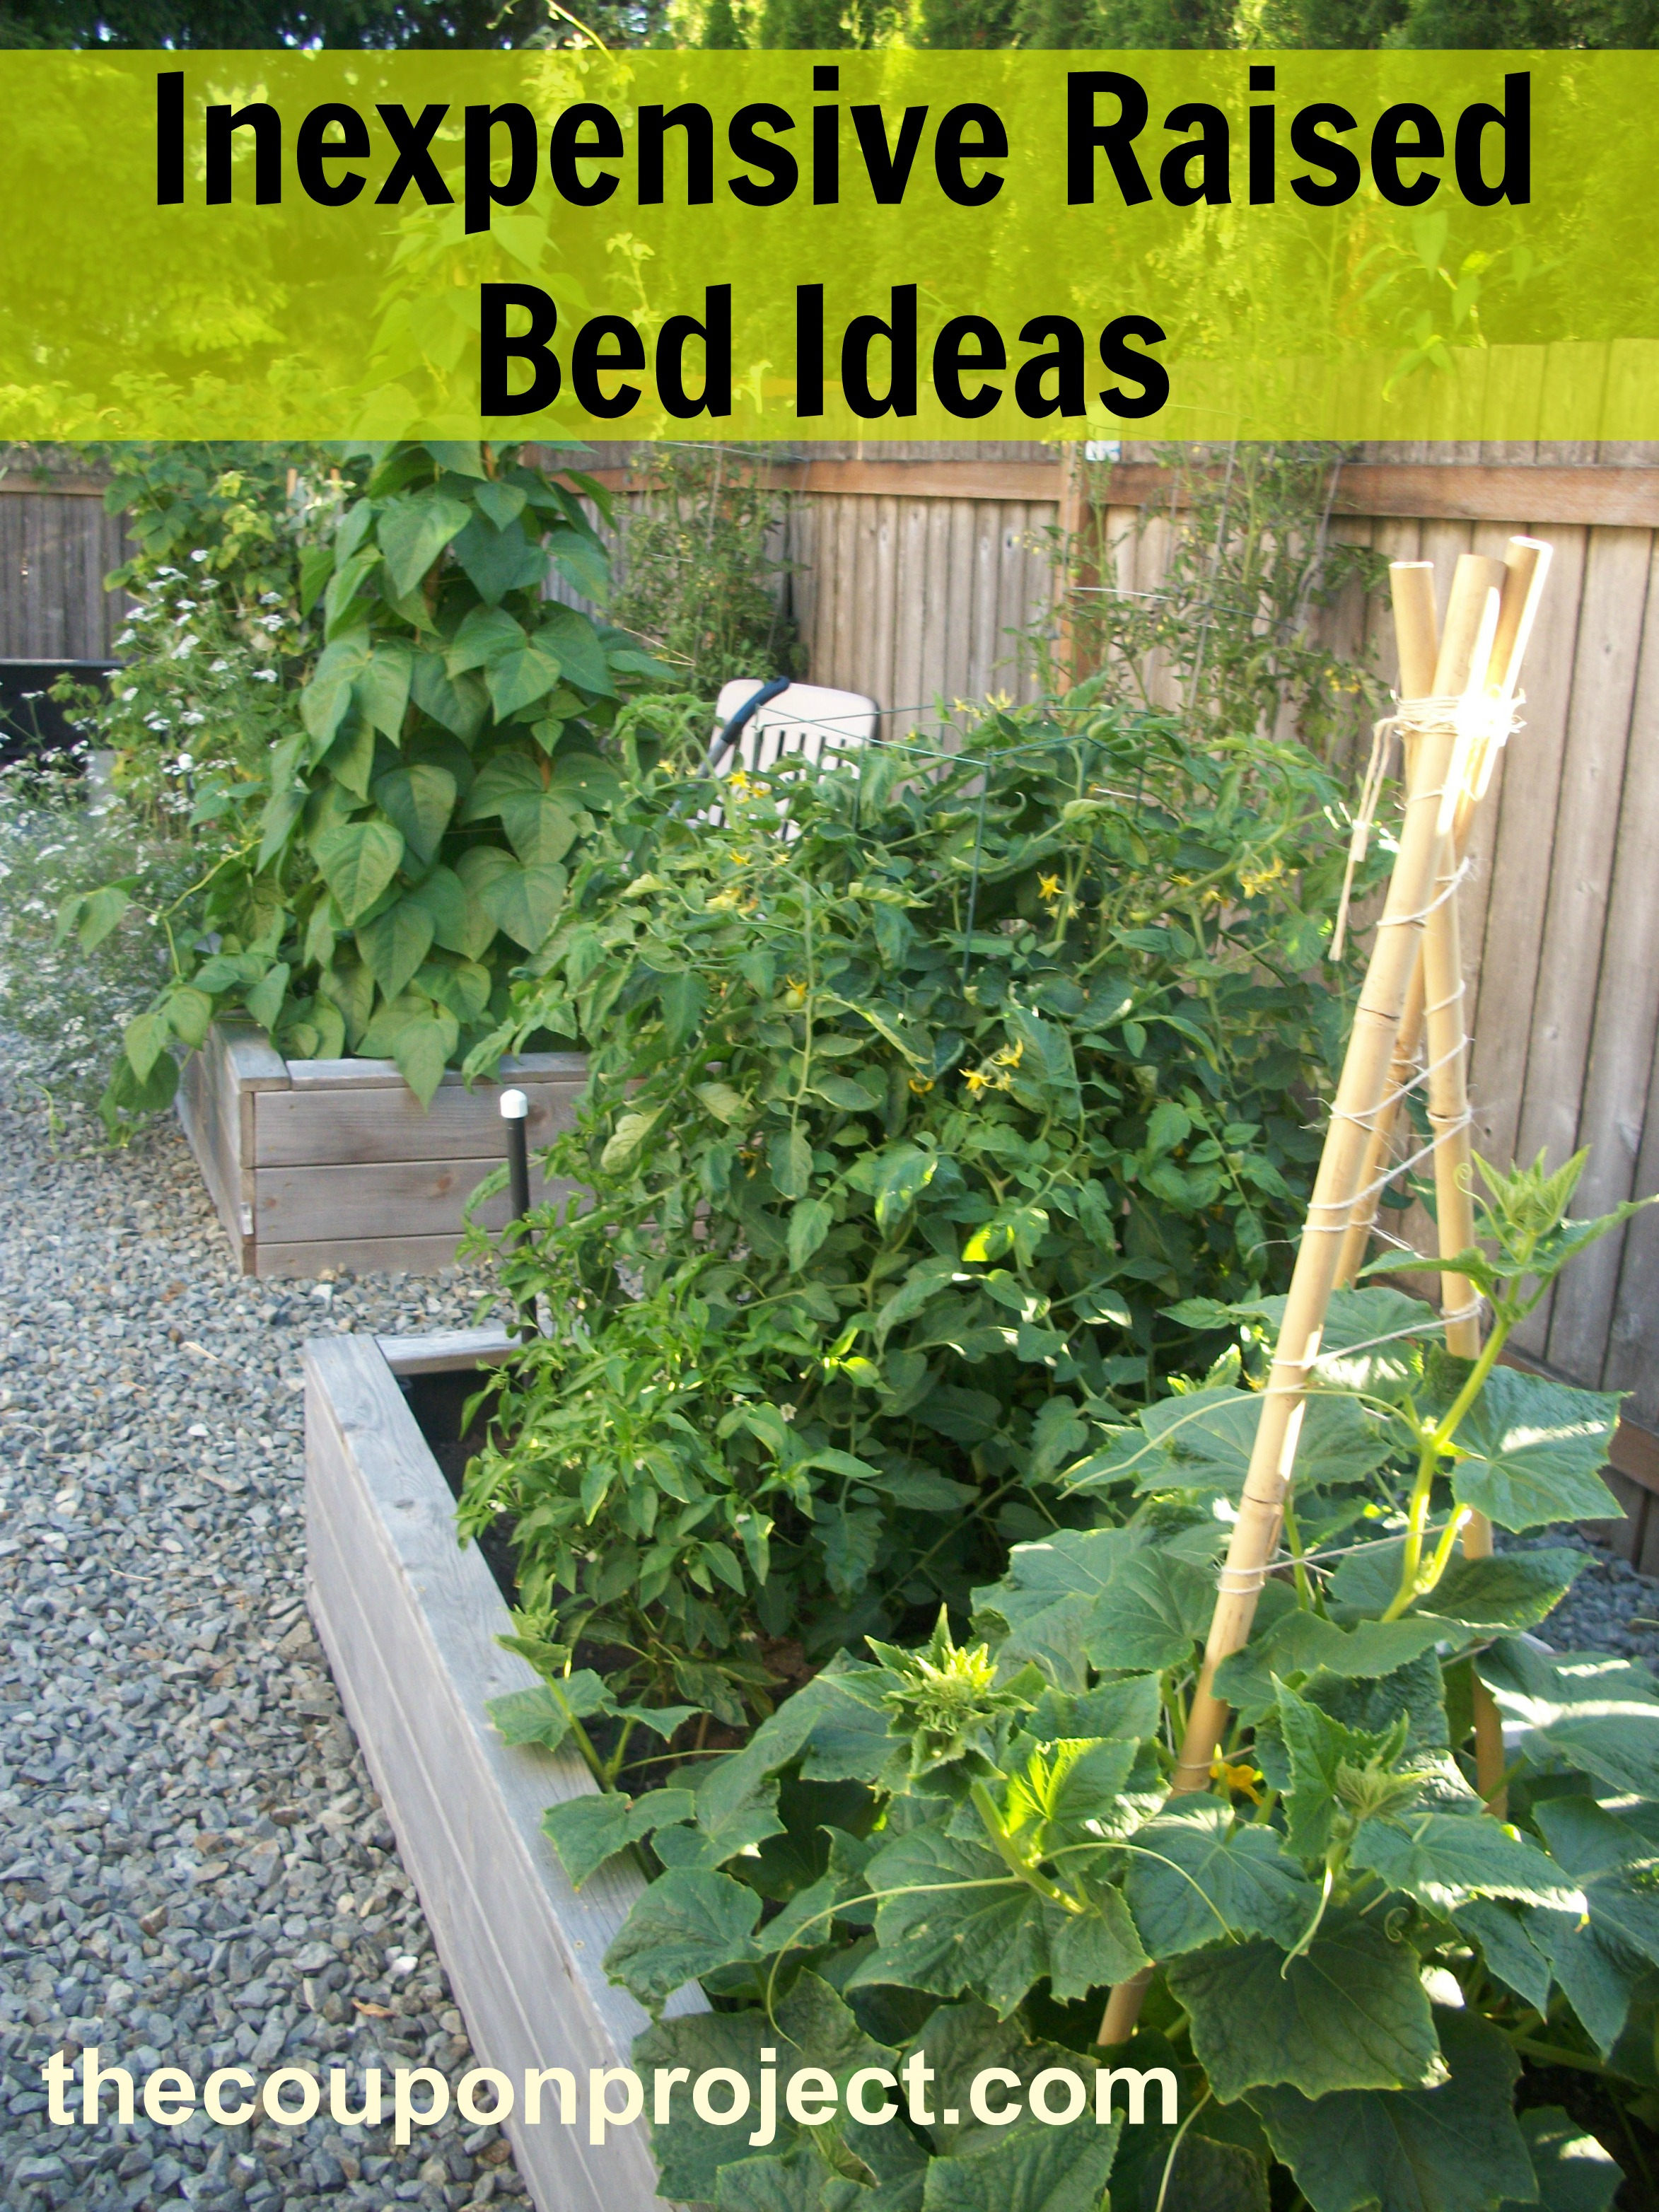 Build Custom Home Online Frugal Gardening Four Inexpensive Raised Bed Ideas